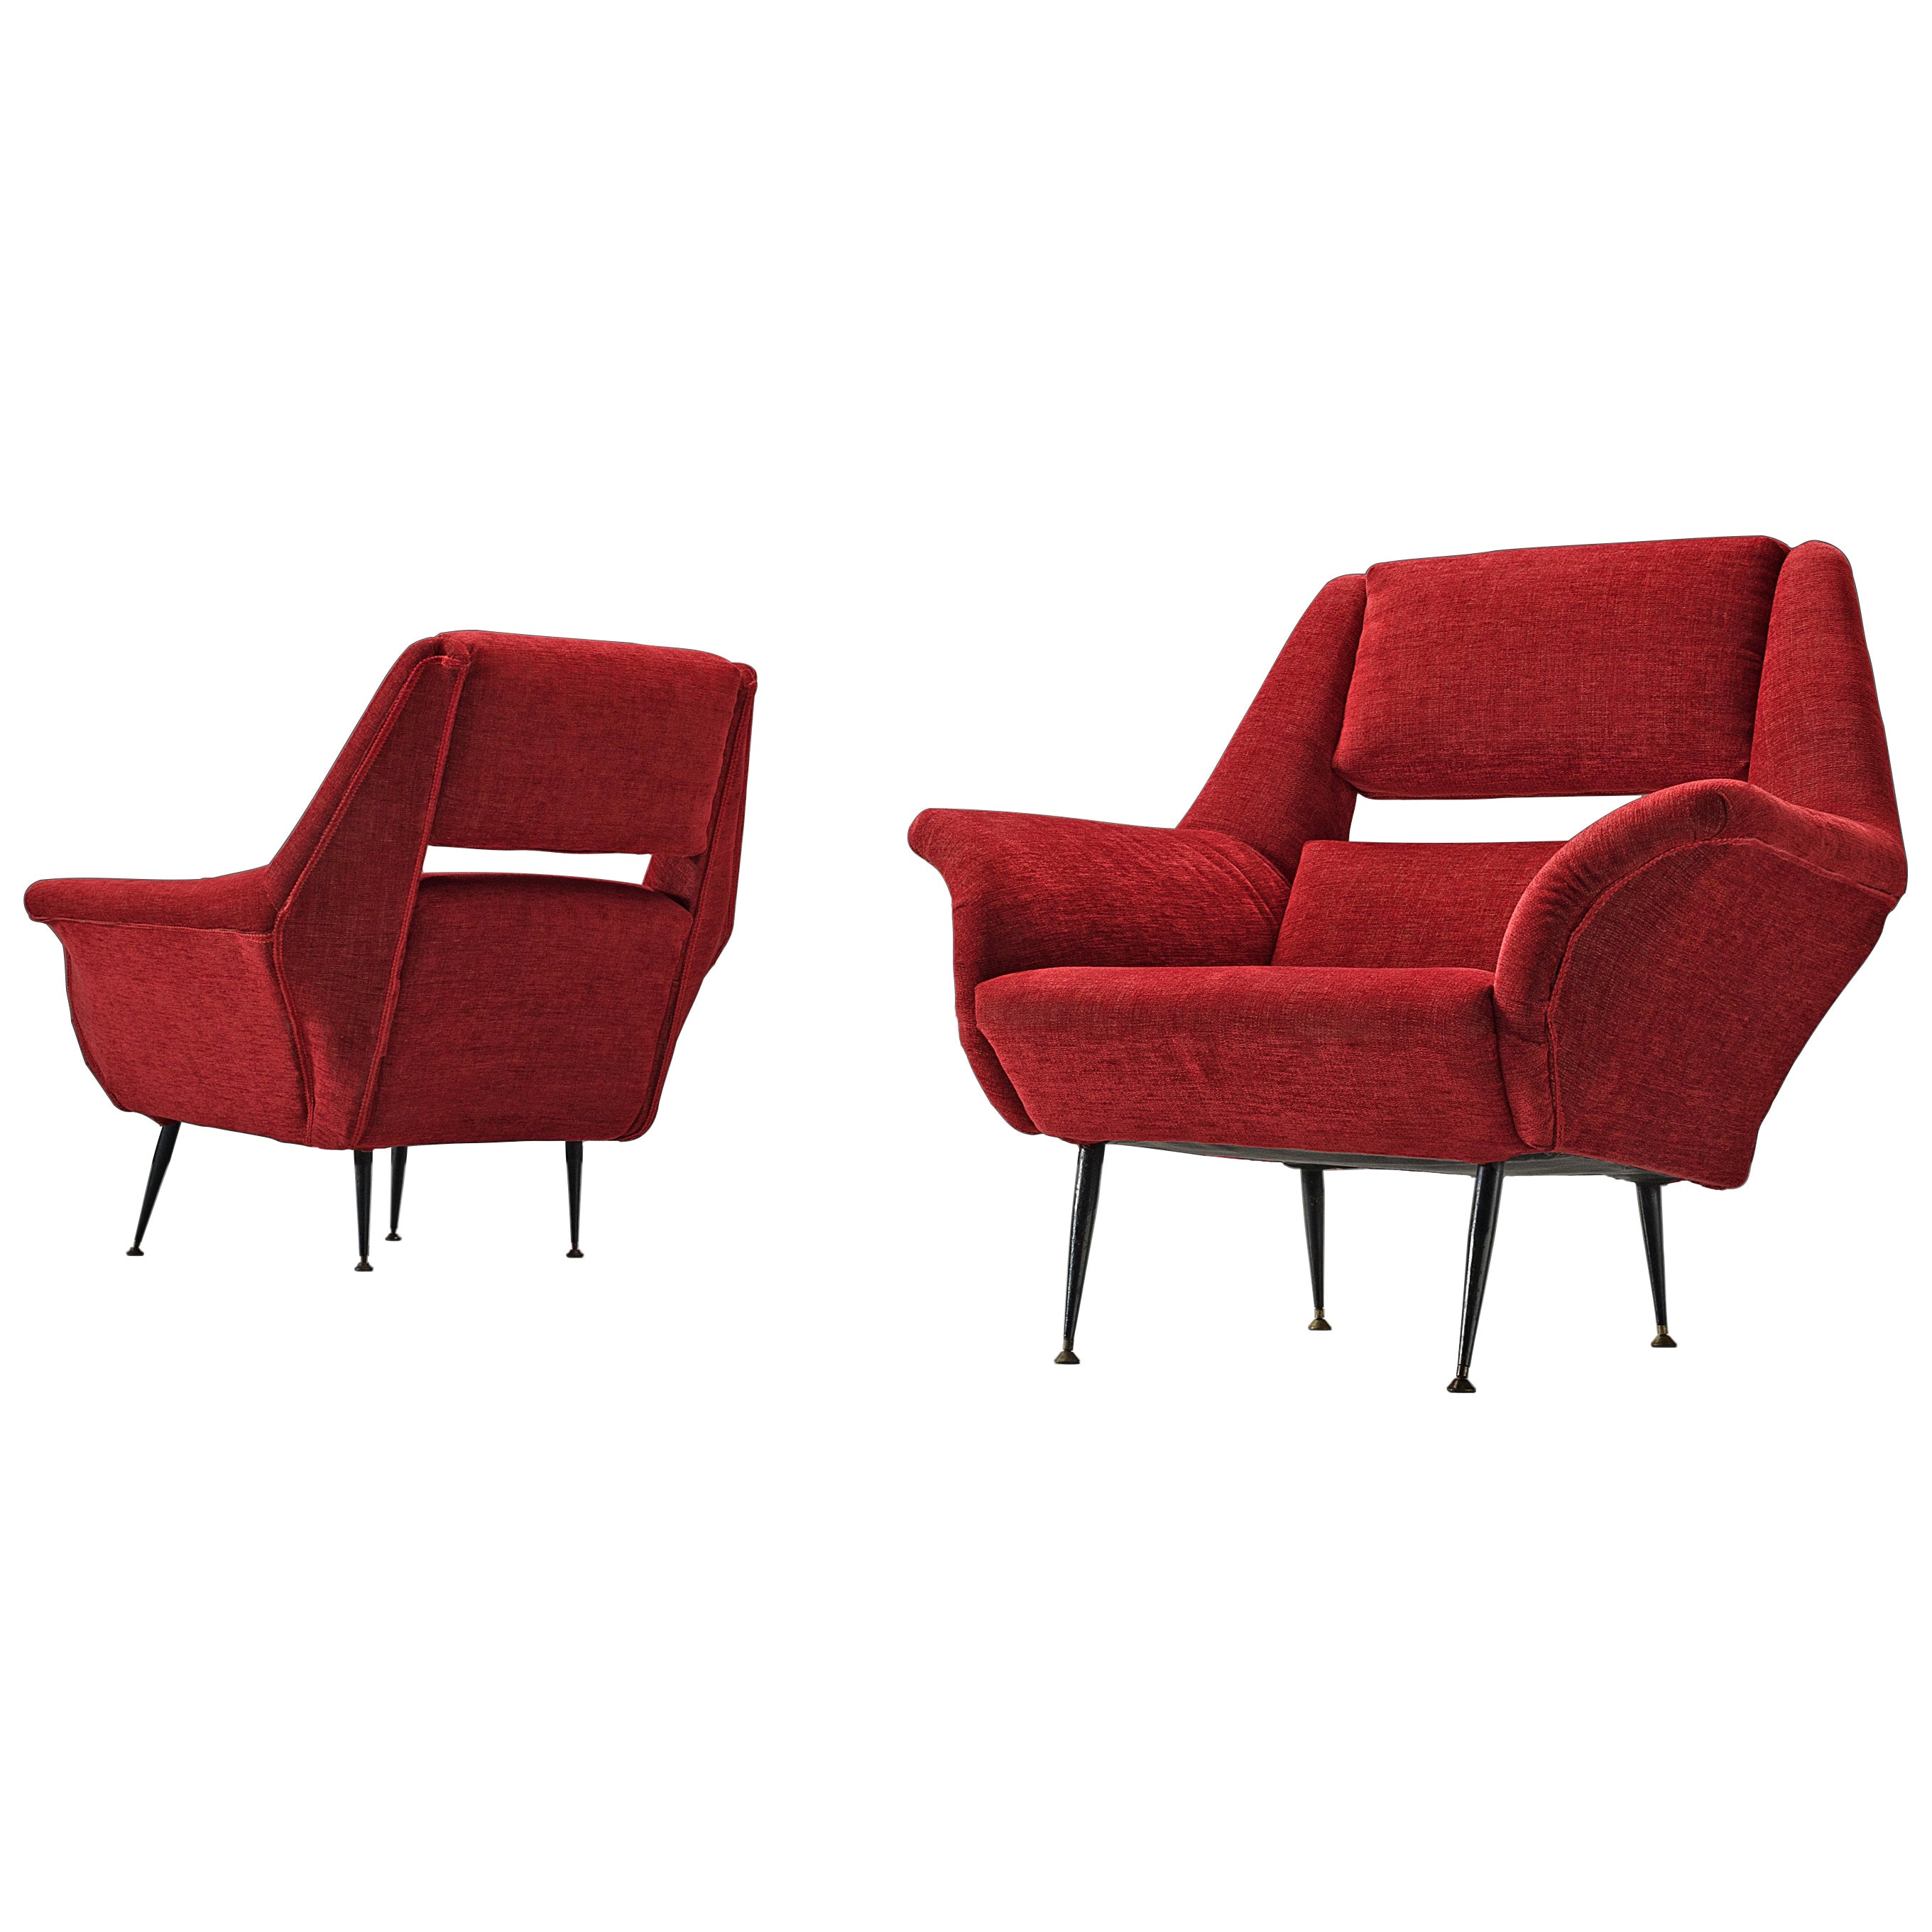 Elegant Italian Lounge Chairs in Red Upholstery